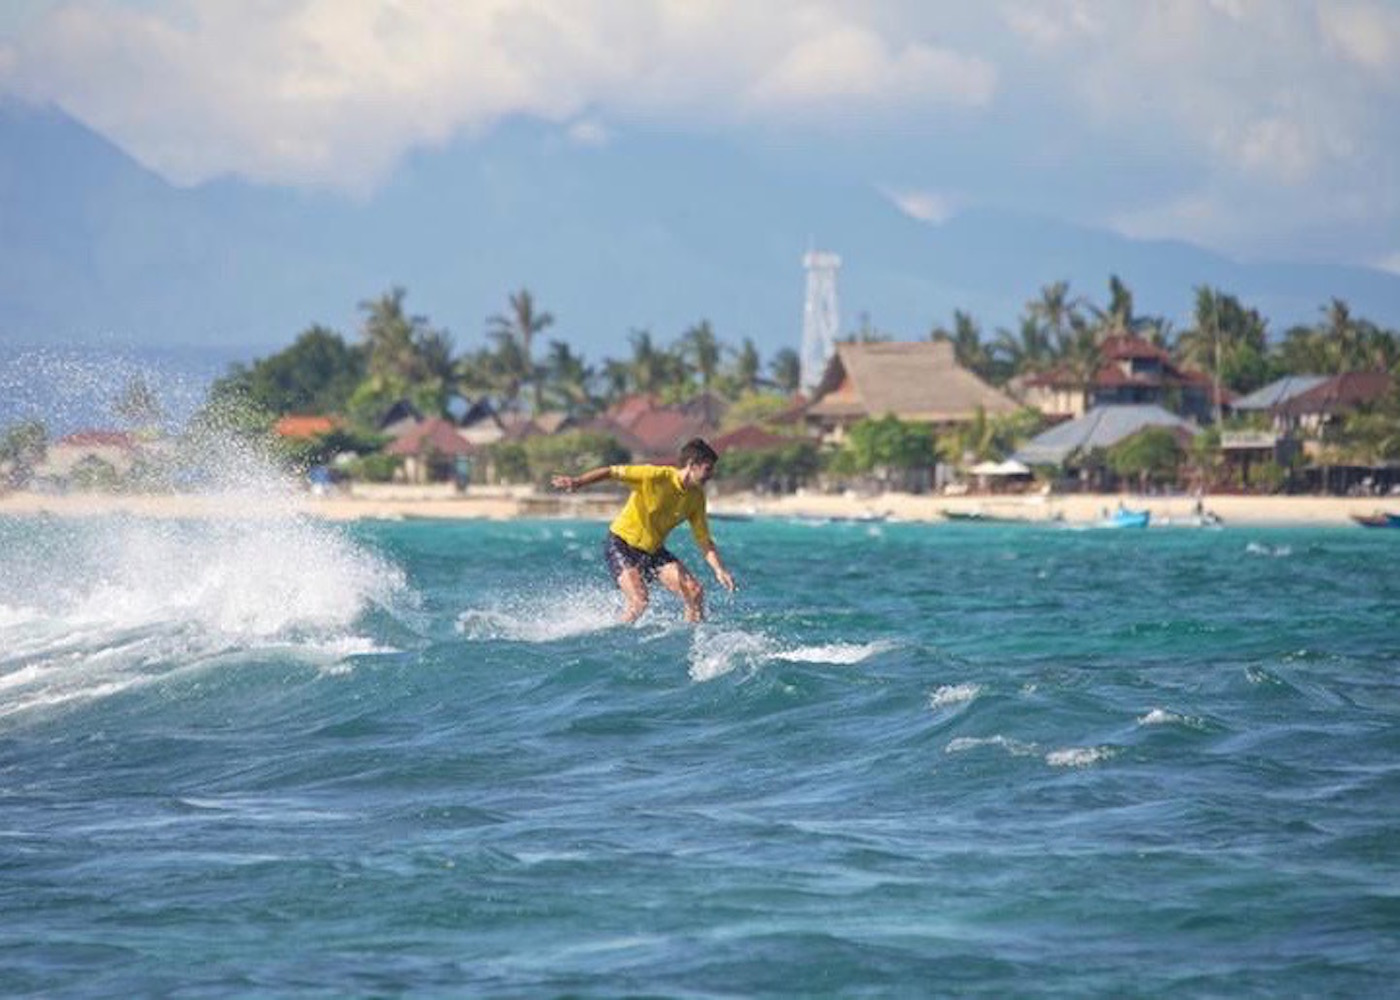 Surfer riding the waves in Nusa Lembongan, Bali, Indonesia